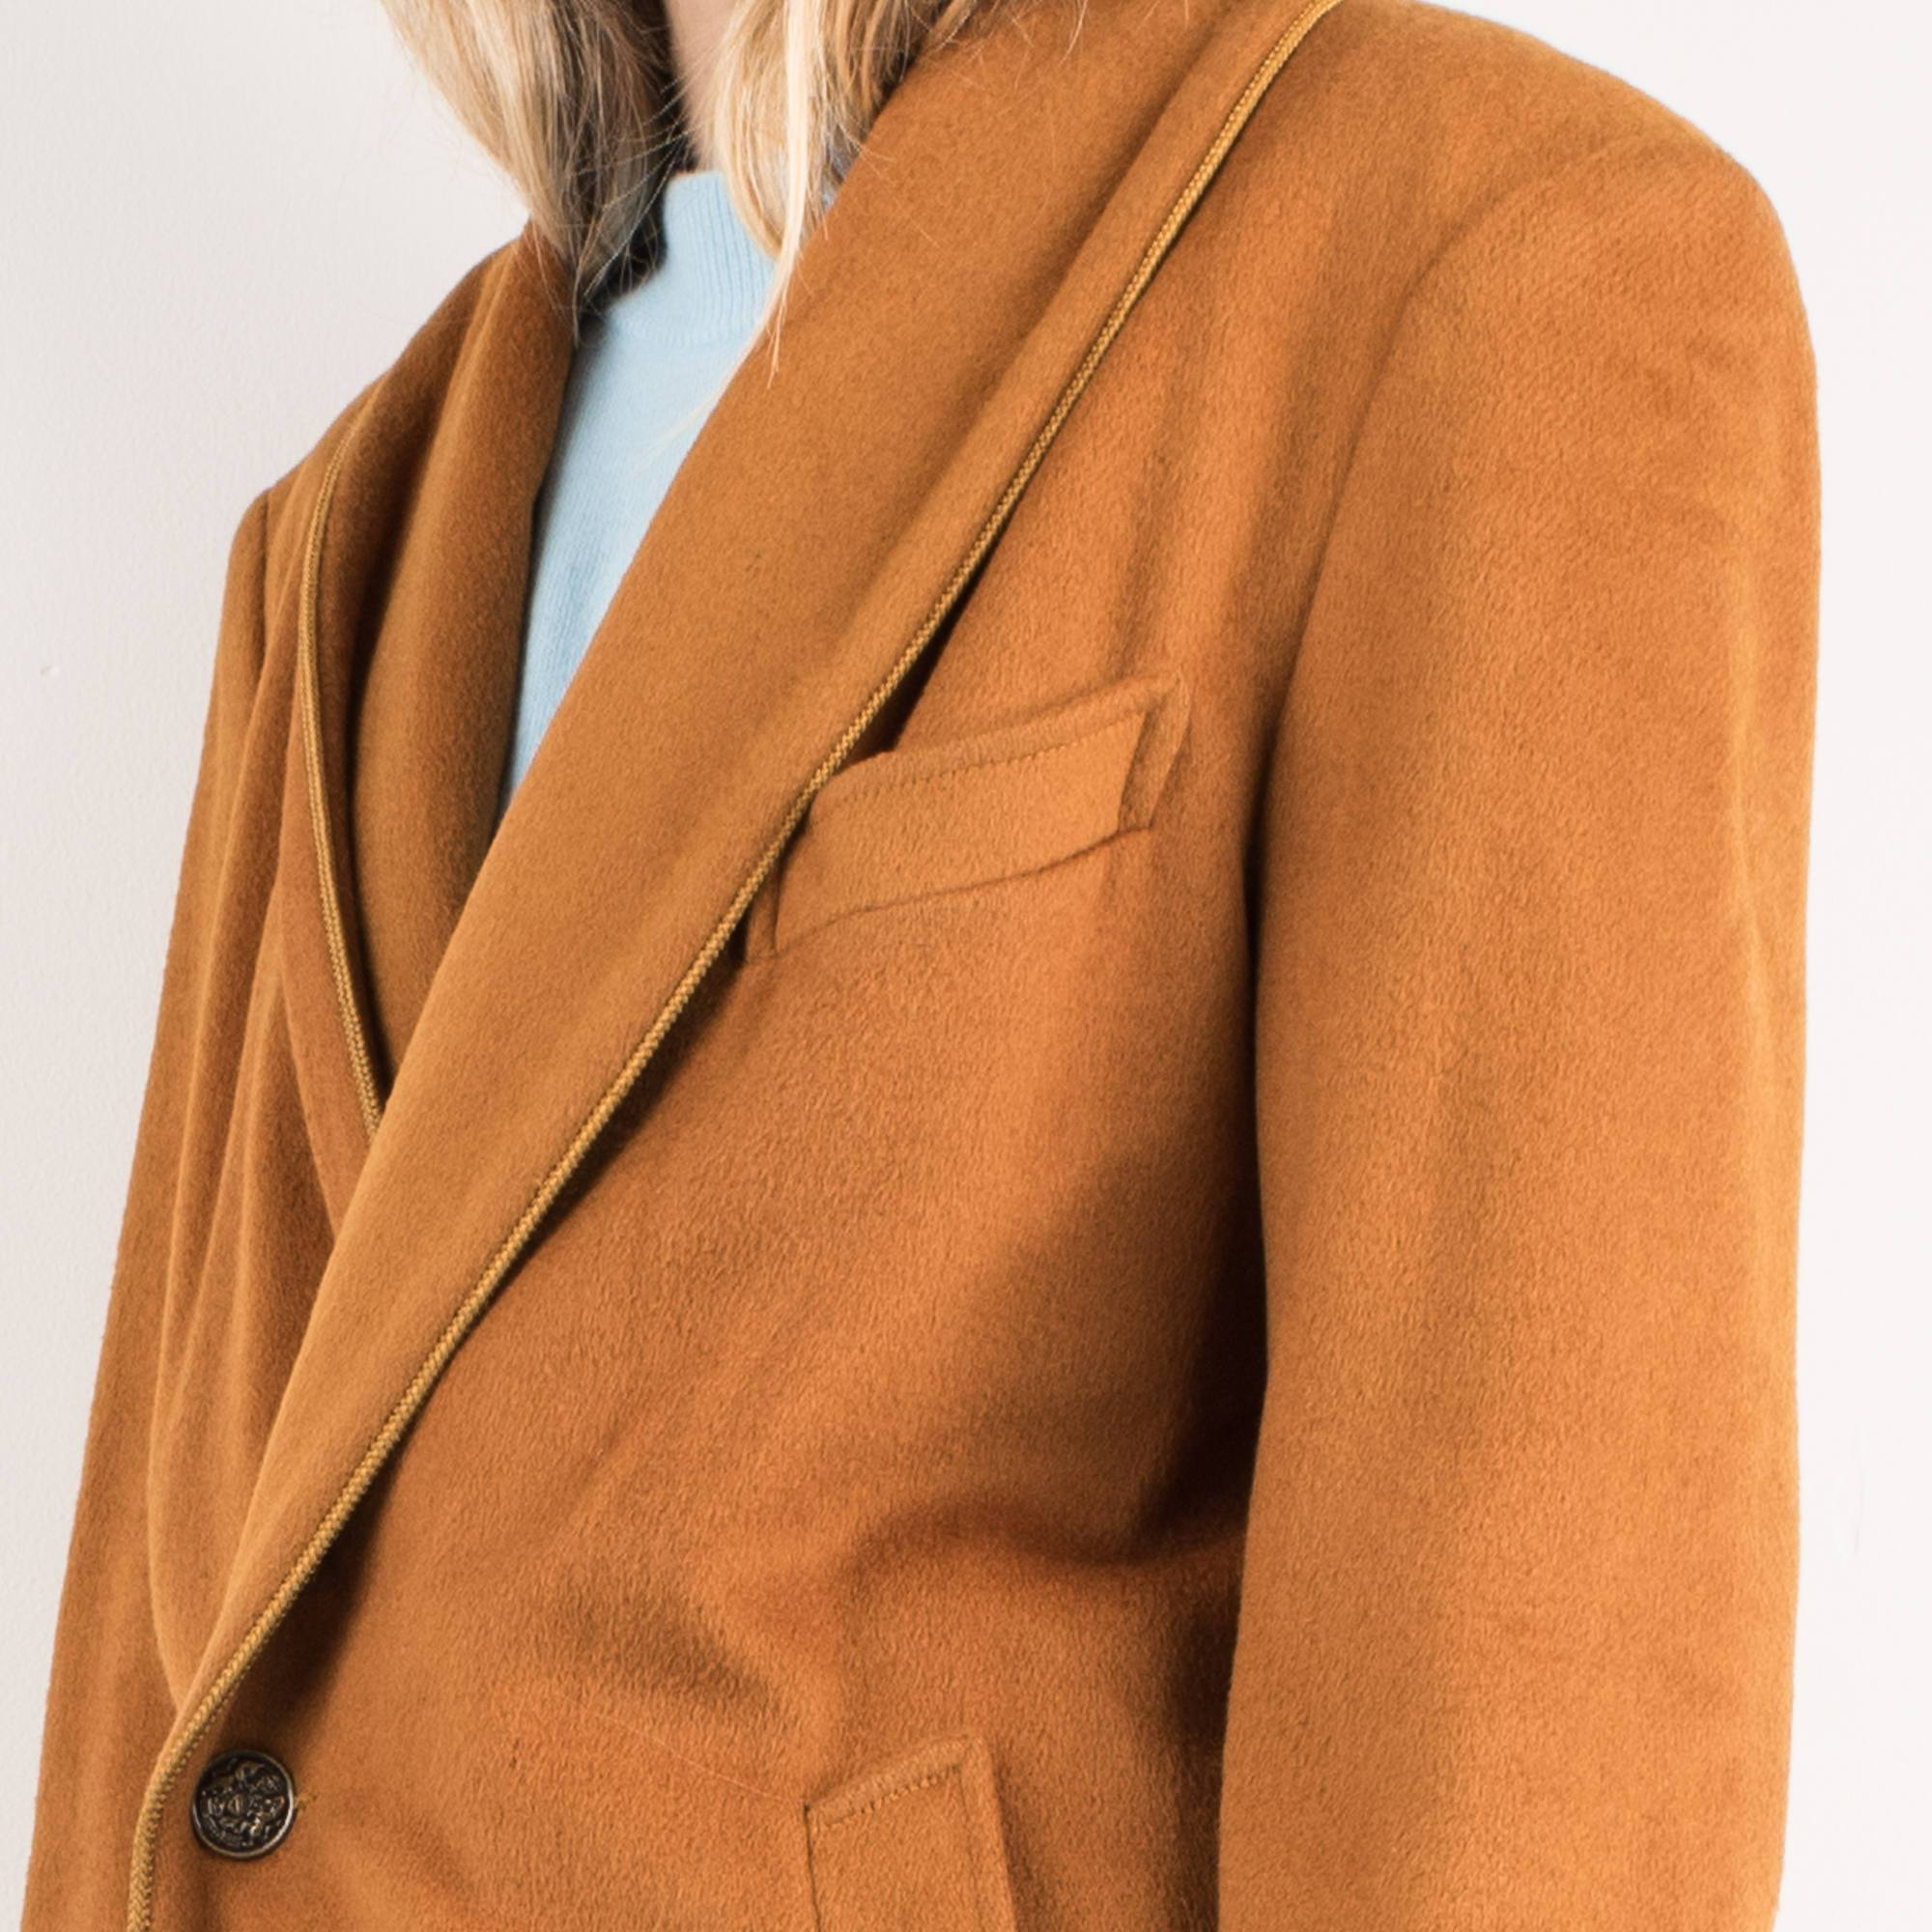 Vintage Squash Wool Coat / S - Closed Caption